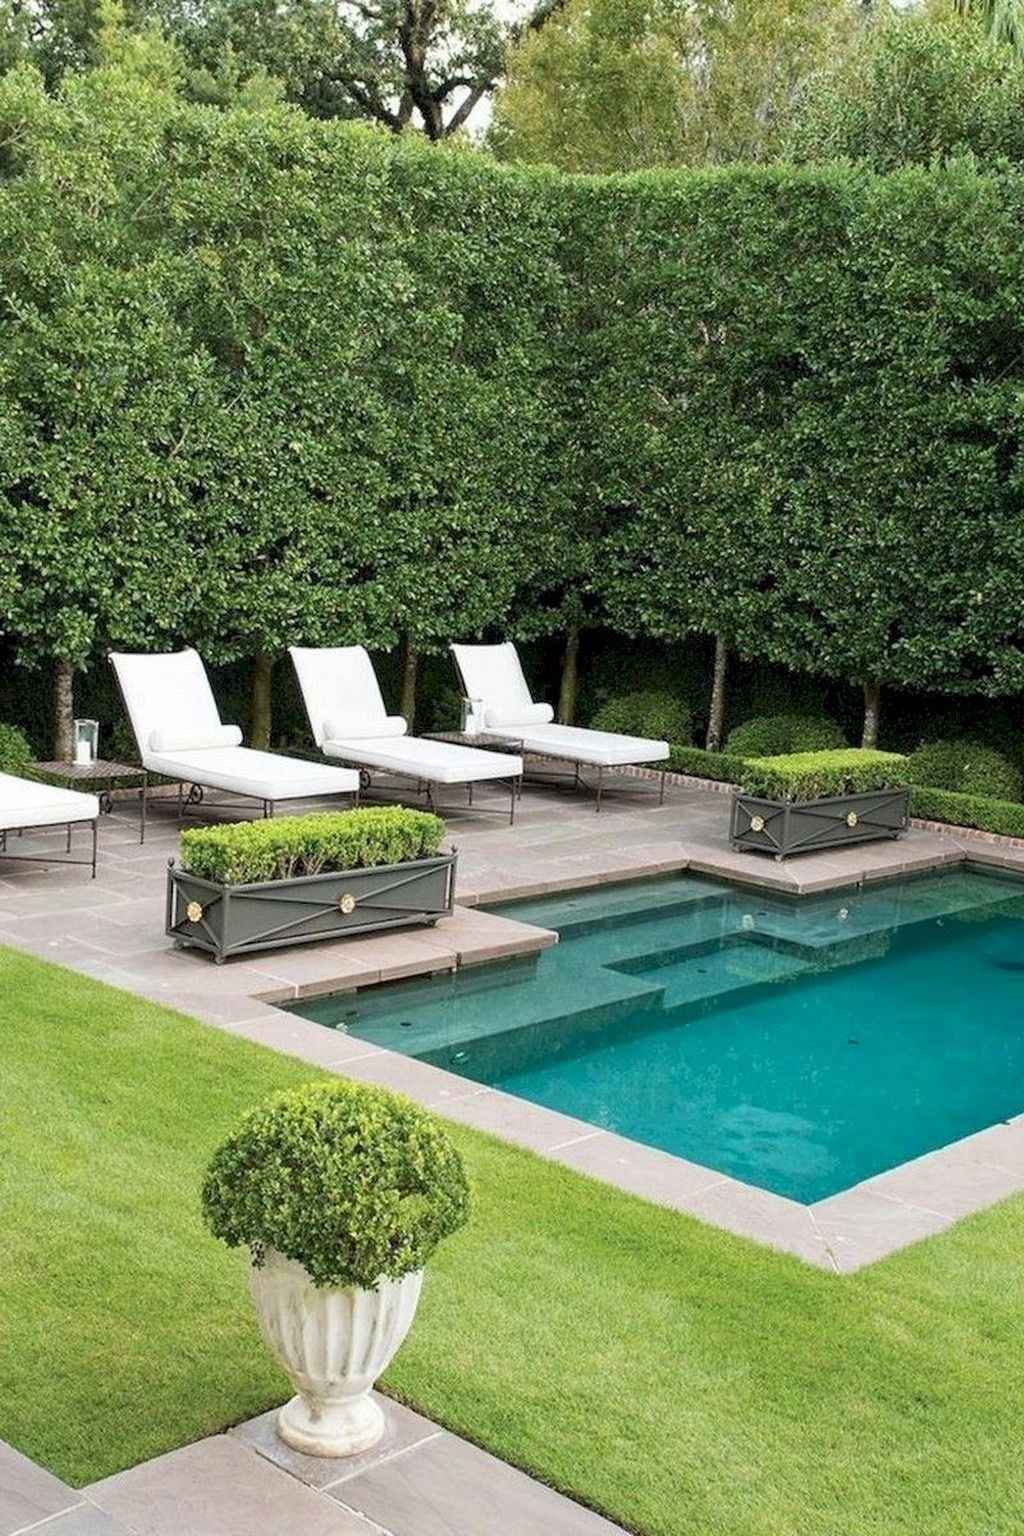 33 Lovely Swimming Pool Garden Ideas To Get Natural Accent Pimphomee